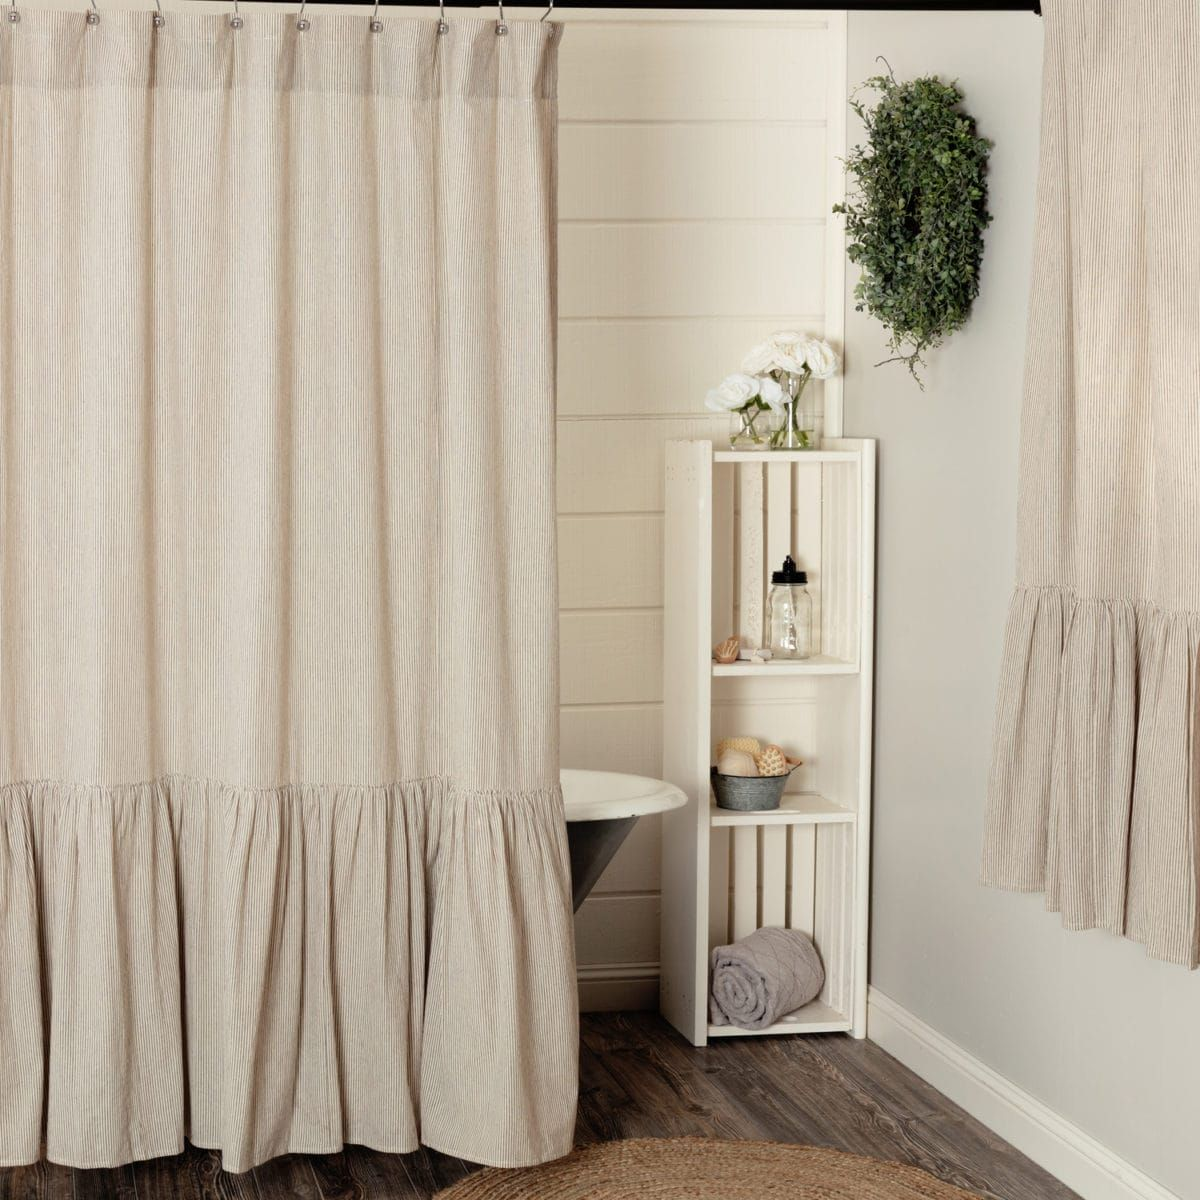 Sara S Ticking Black Ruffled Shower Curtain Piper Classics 2019 Curtains Tabletop Linens More In 2019 Ruffle